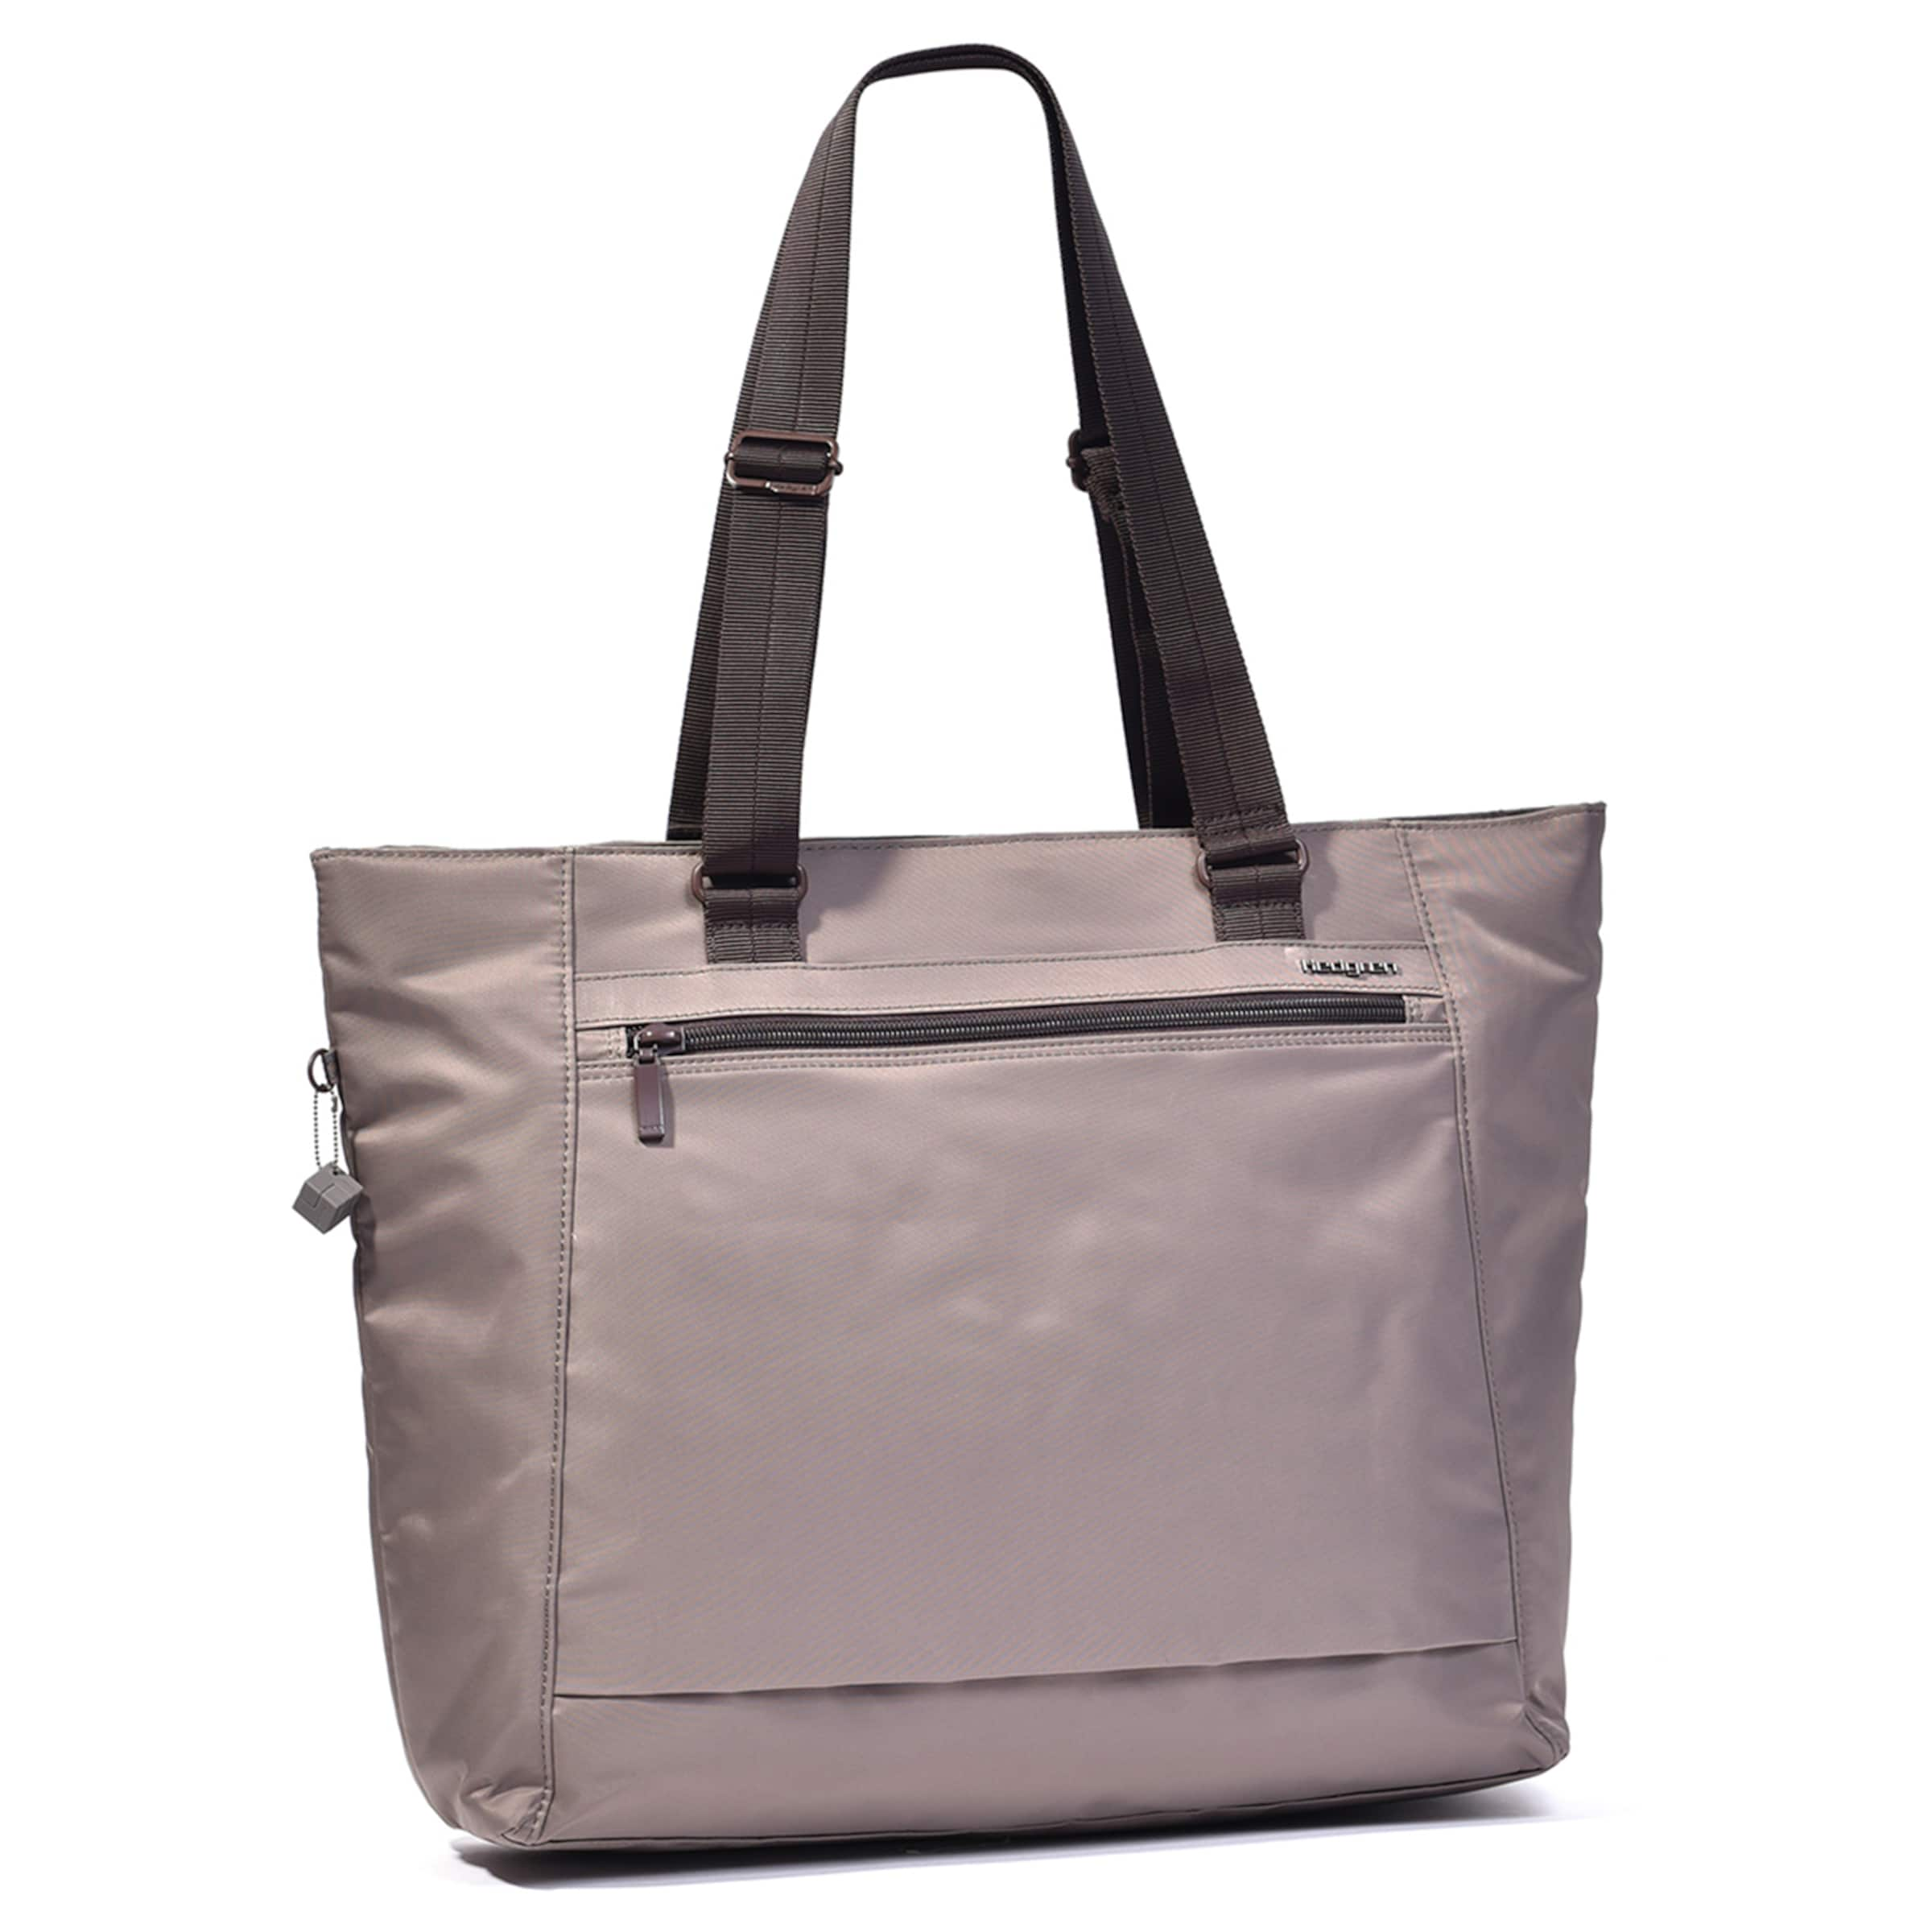 In Hedgren Shopper Hedgren Beige In Shopper 'elvira' 'elvira' dsrtQCh